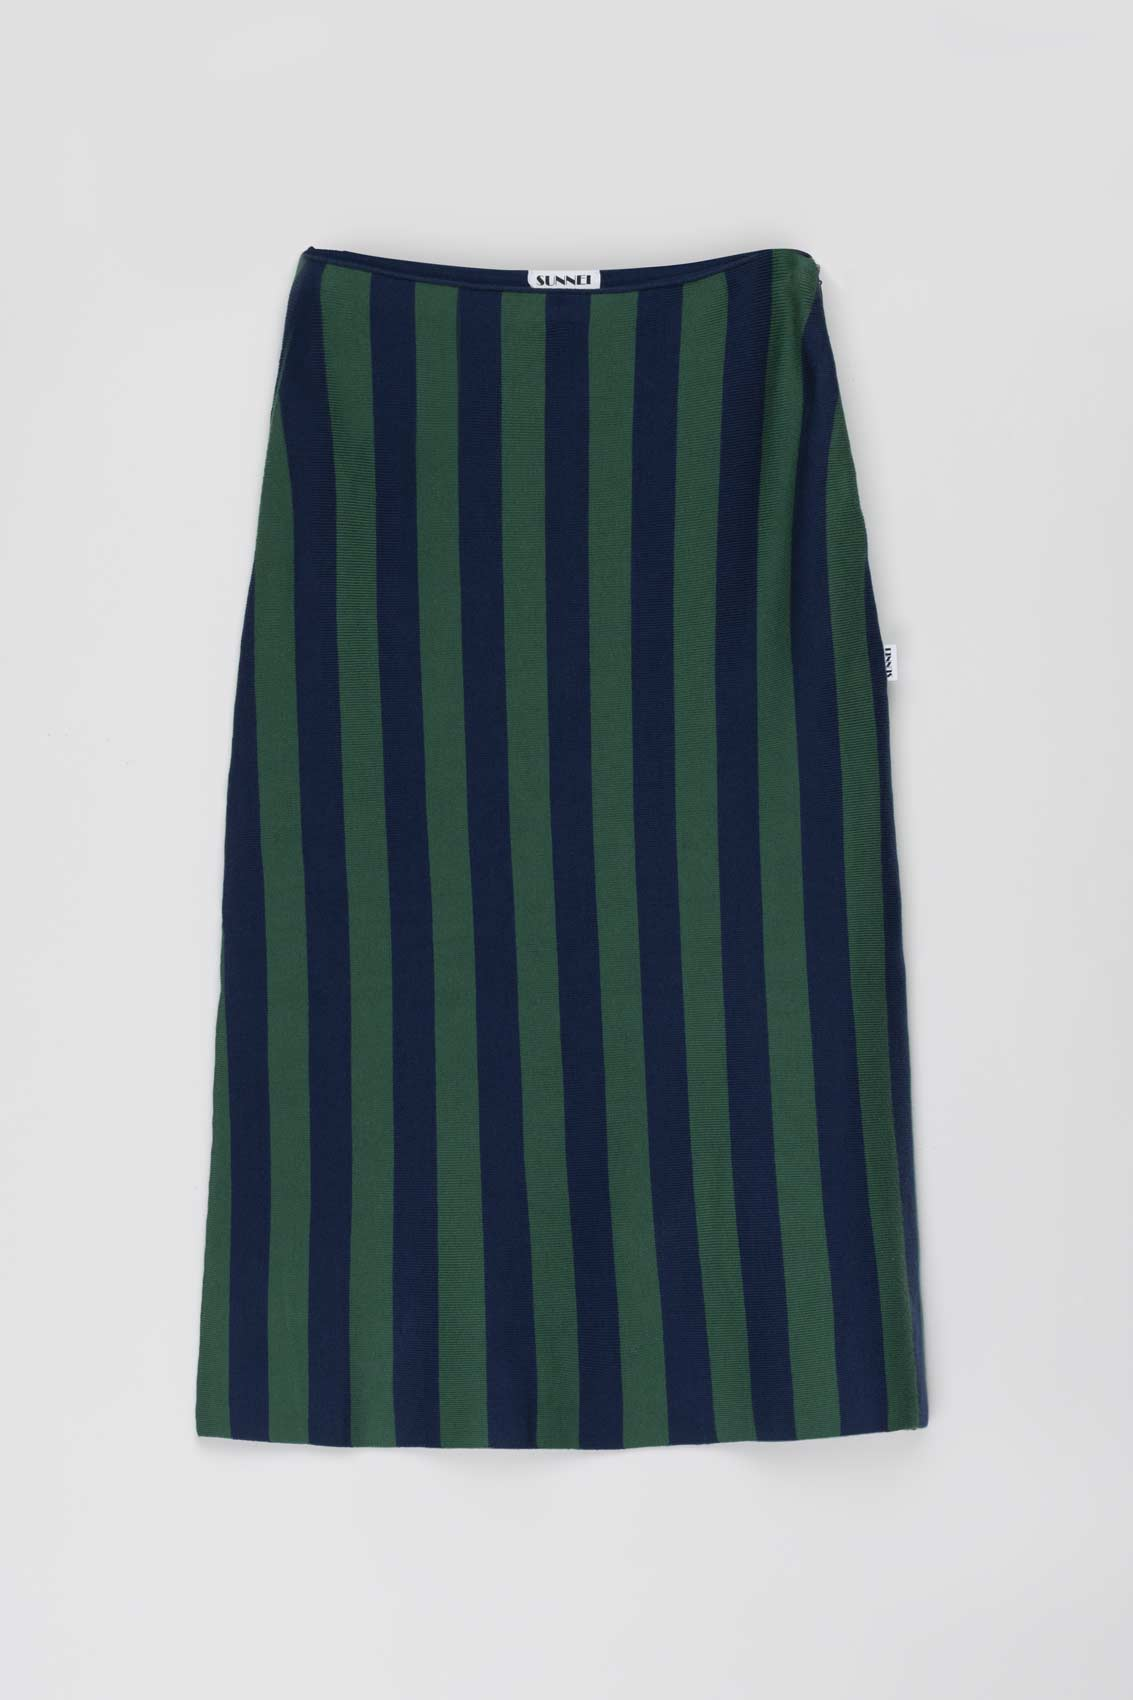 DARK BLUE & GREEN KNIT SKIRT